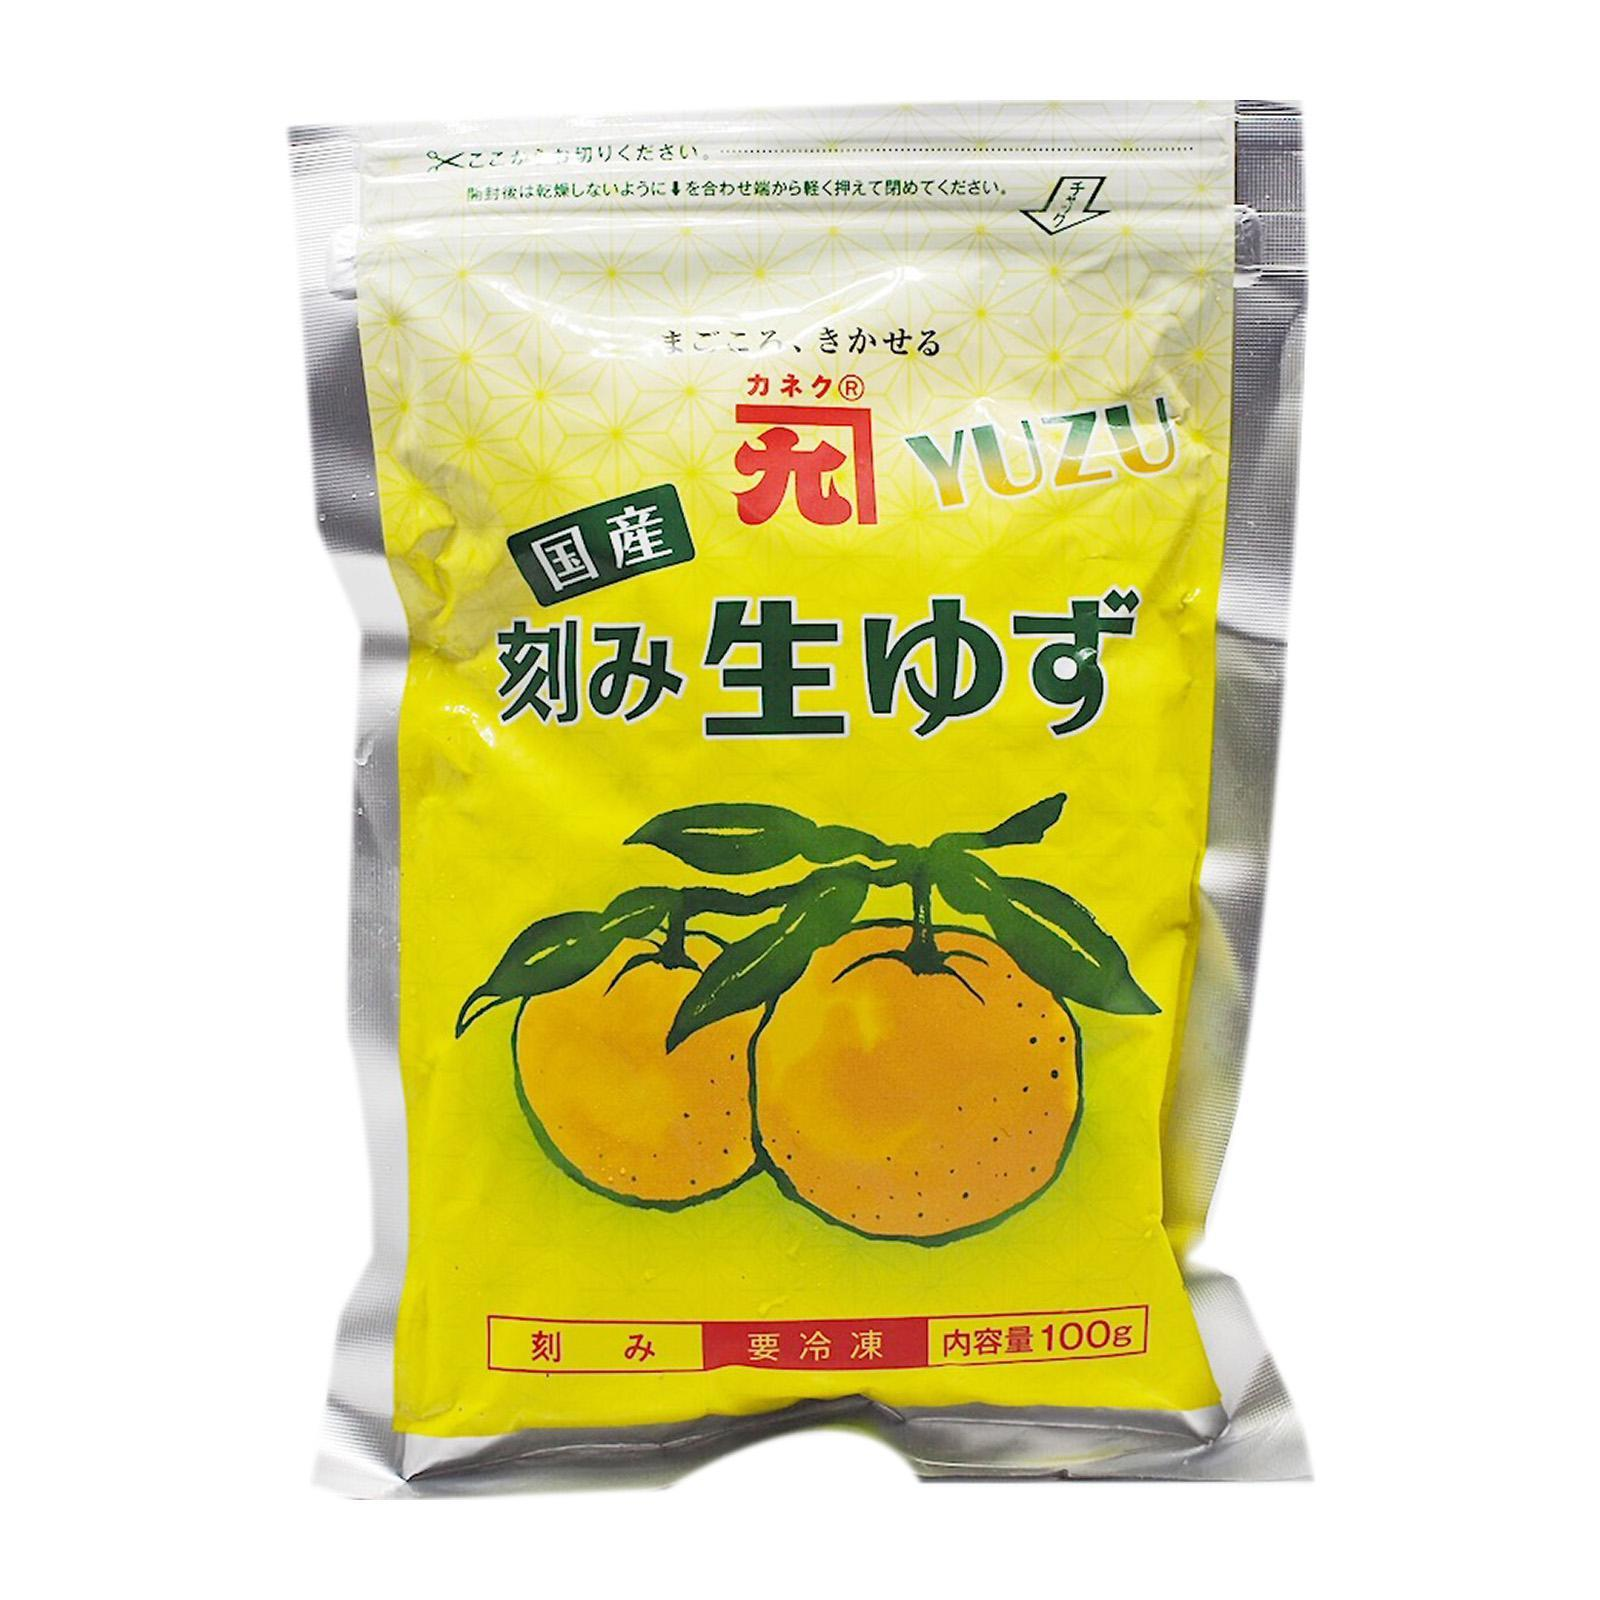 Kaneku Kizami Yuzu (frozen Shredded Yuzu Zest) - Frozen By Redmart.